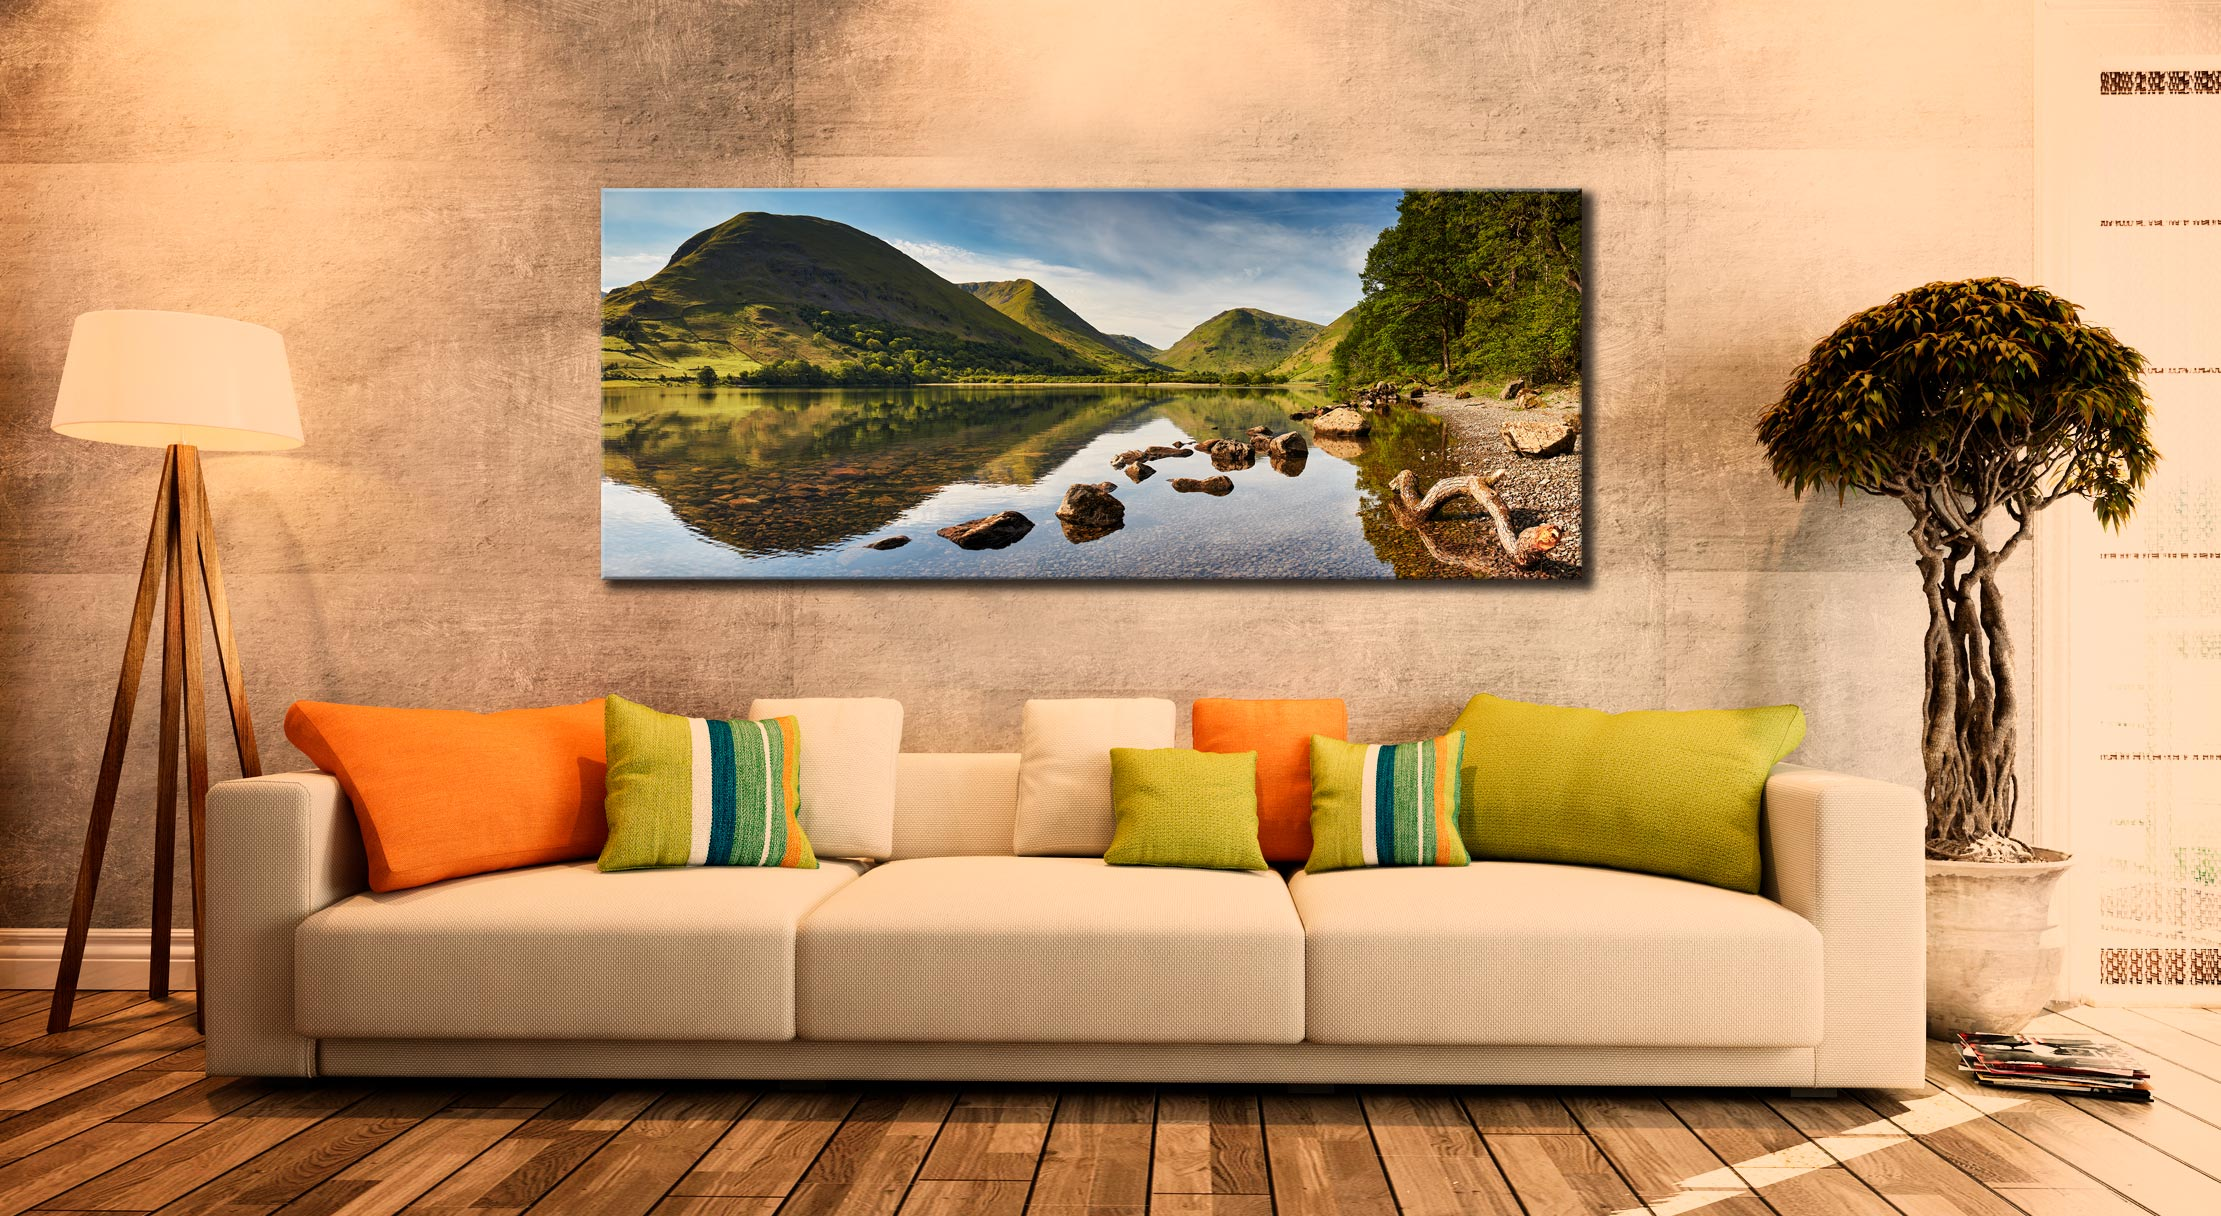 Brothers Water Reflections - Canvas Print on Wall